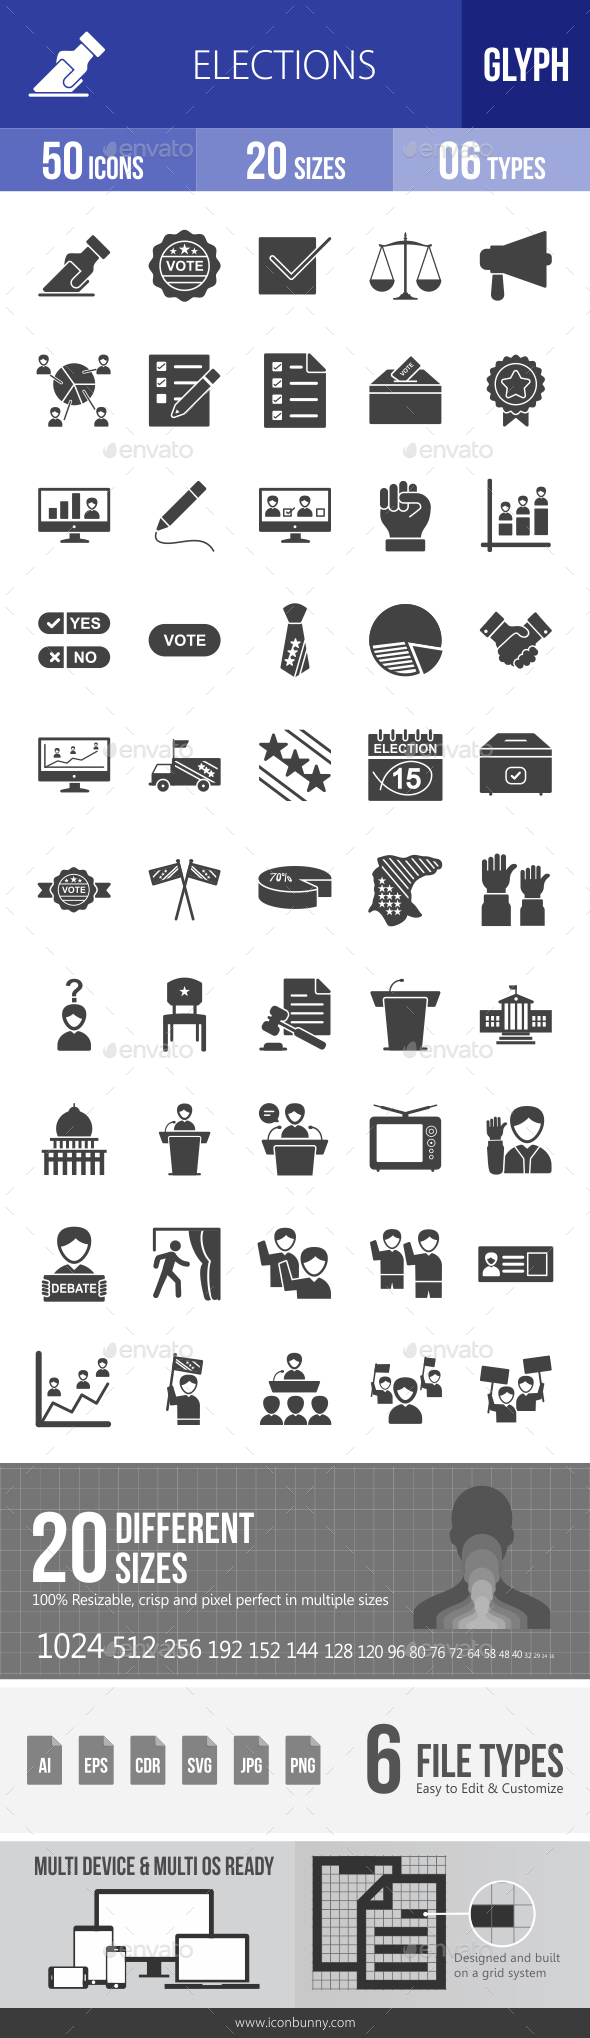 Elections Glyph Icons - Icons